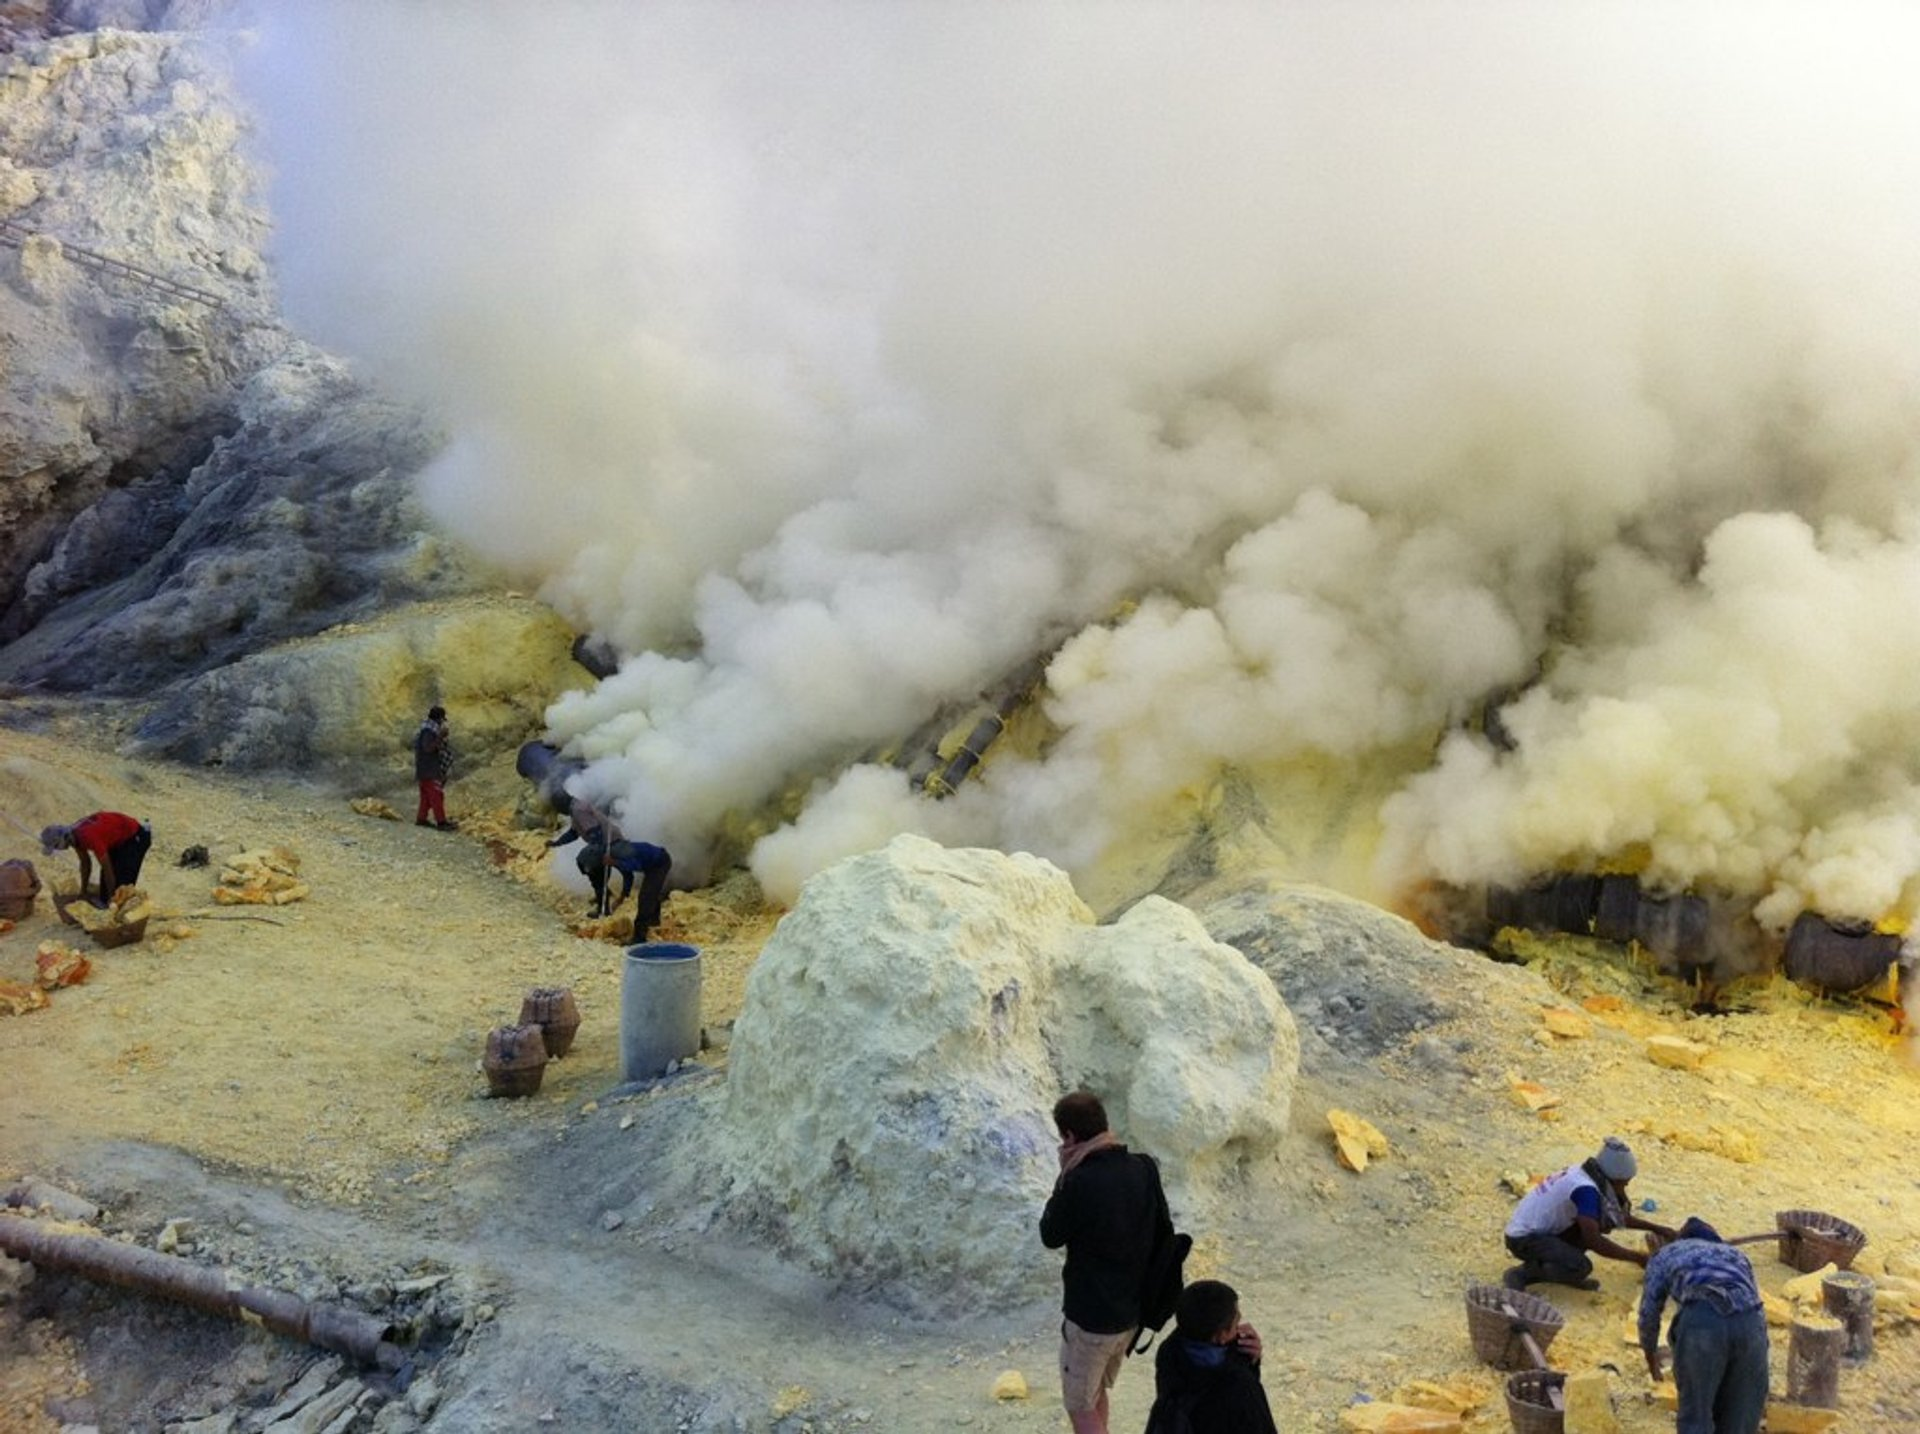 Sulfur miners at Kawah Ijen Crater 2020